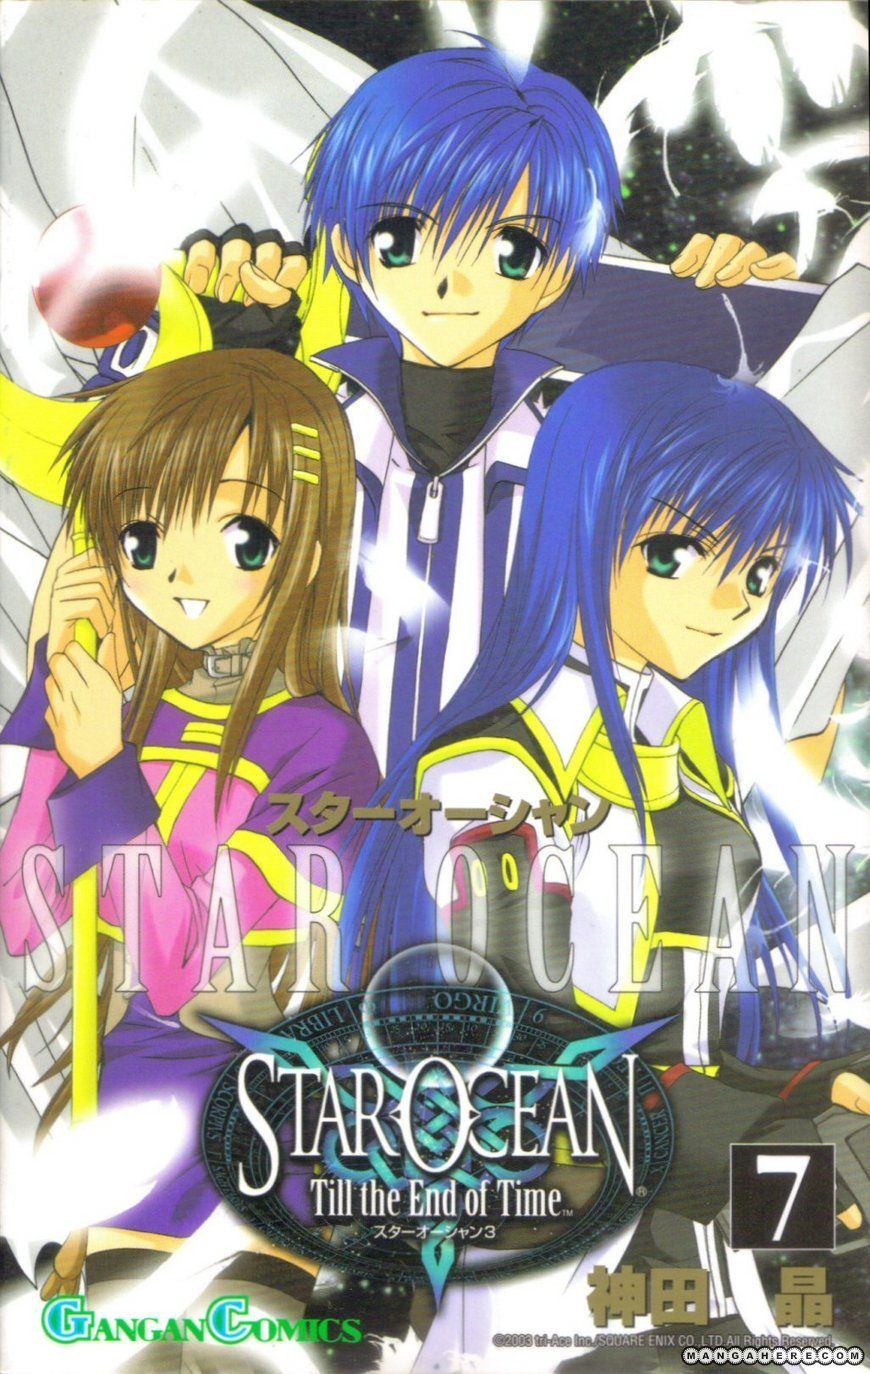 Star Ocean: Till The End of Time 26 Page 1